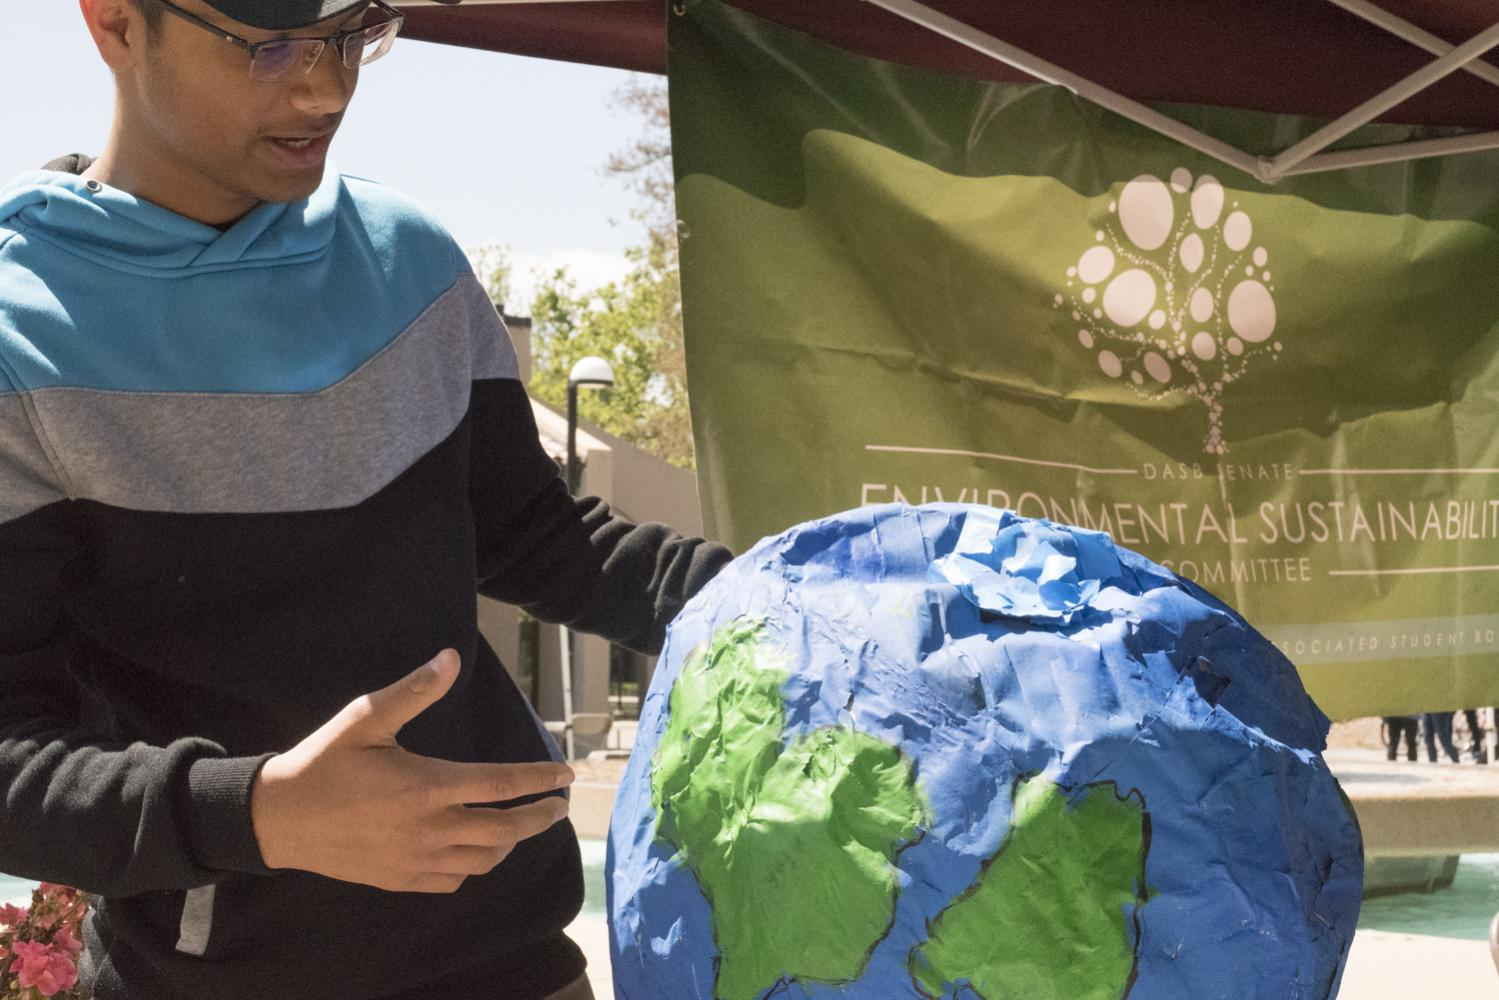 Adita Vishwakarma, 18, engineering major, explains the importance of environmental sustainability on a paper-mache globe made out of old La Voz issues